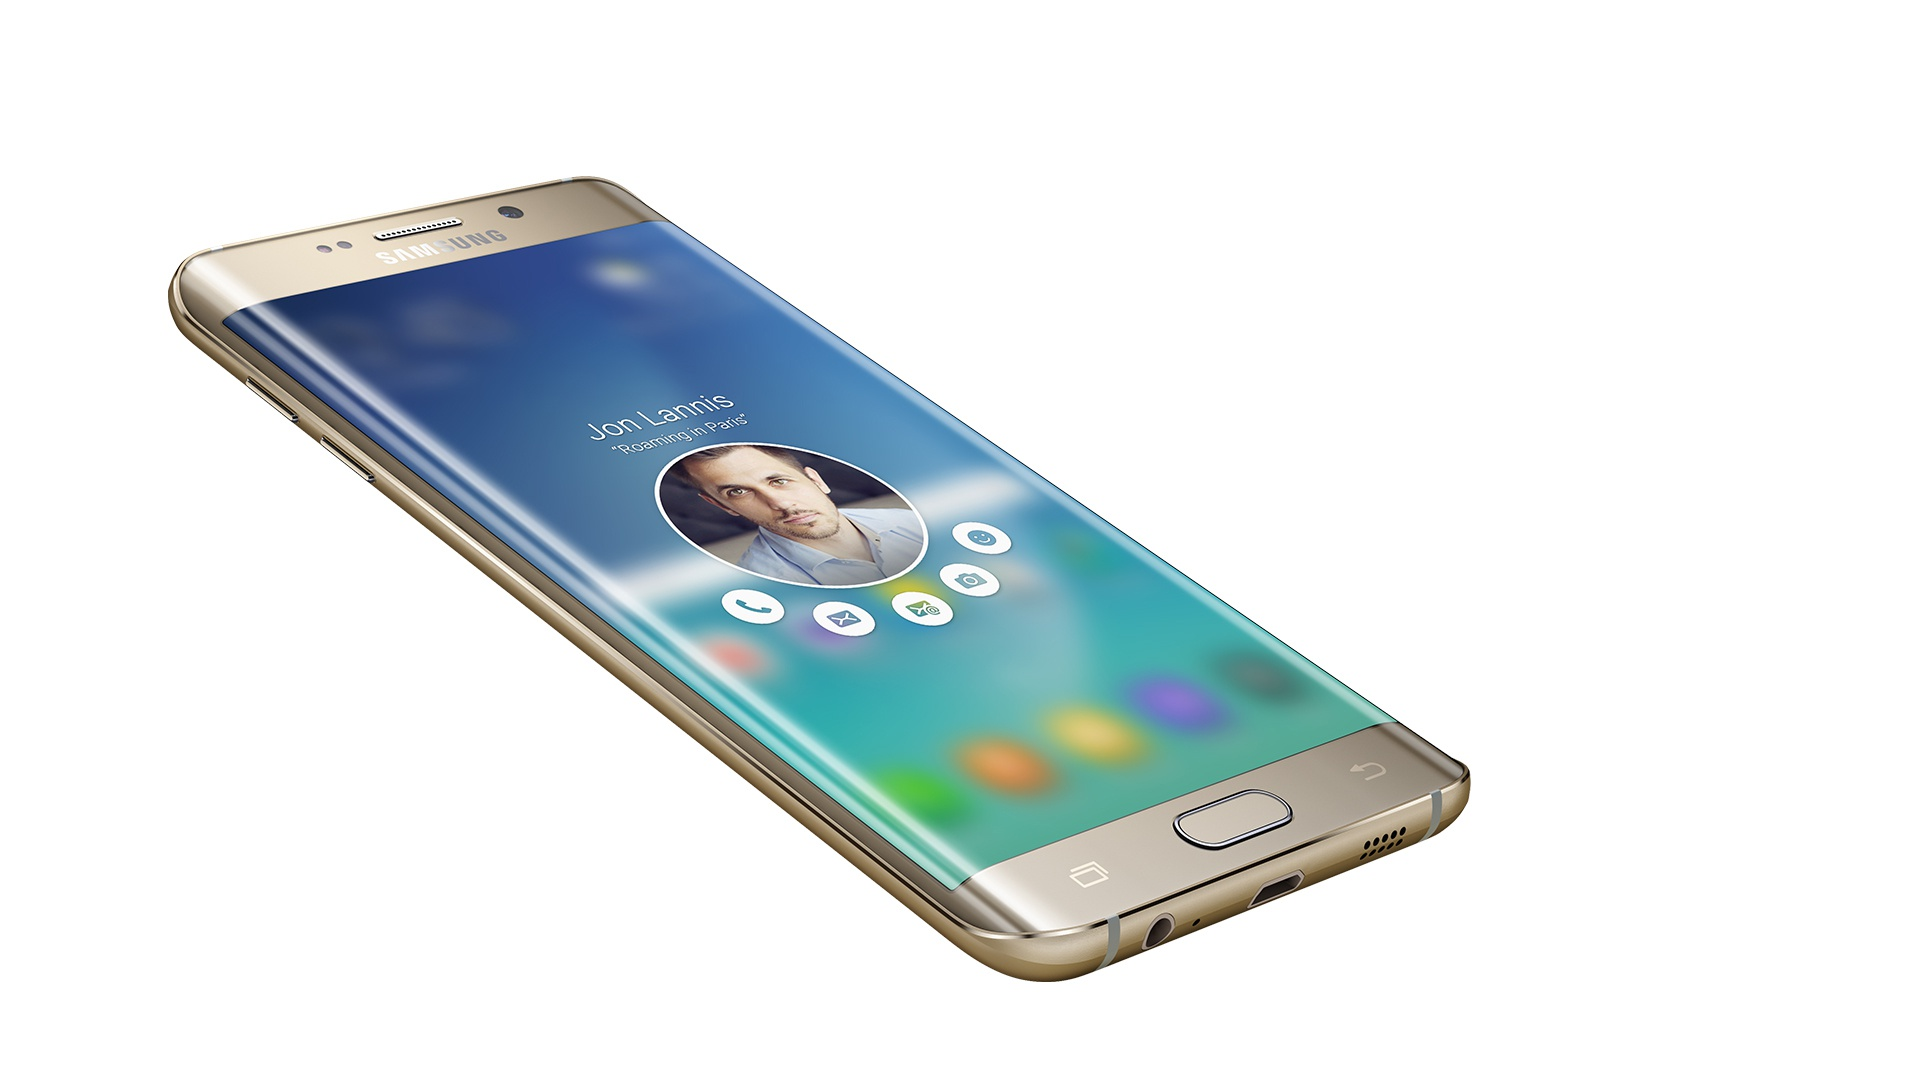 galaxy-s6-edge+_design_edge-ux_oncircle